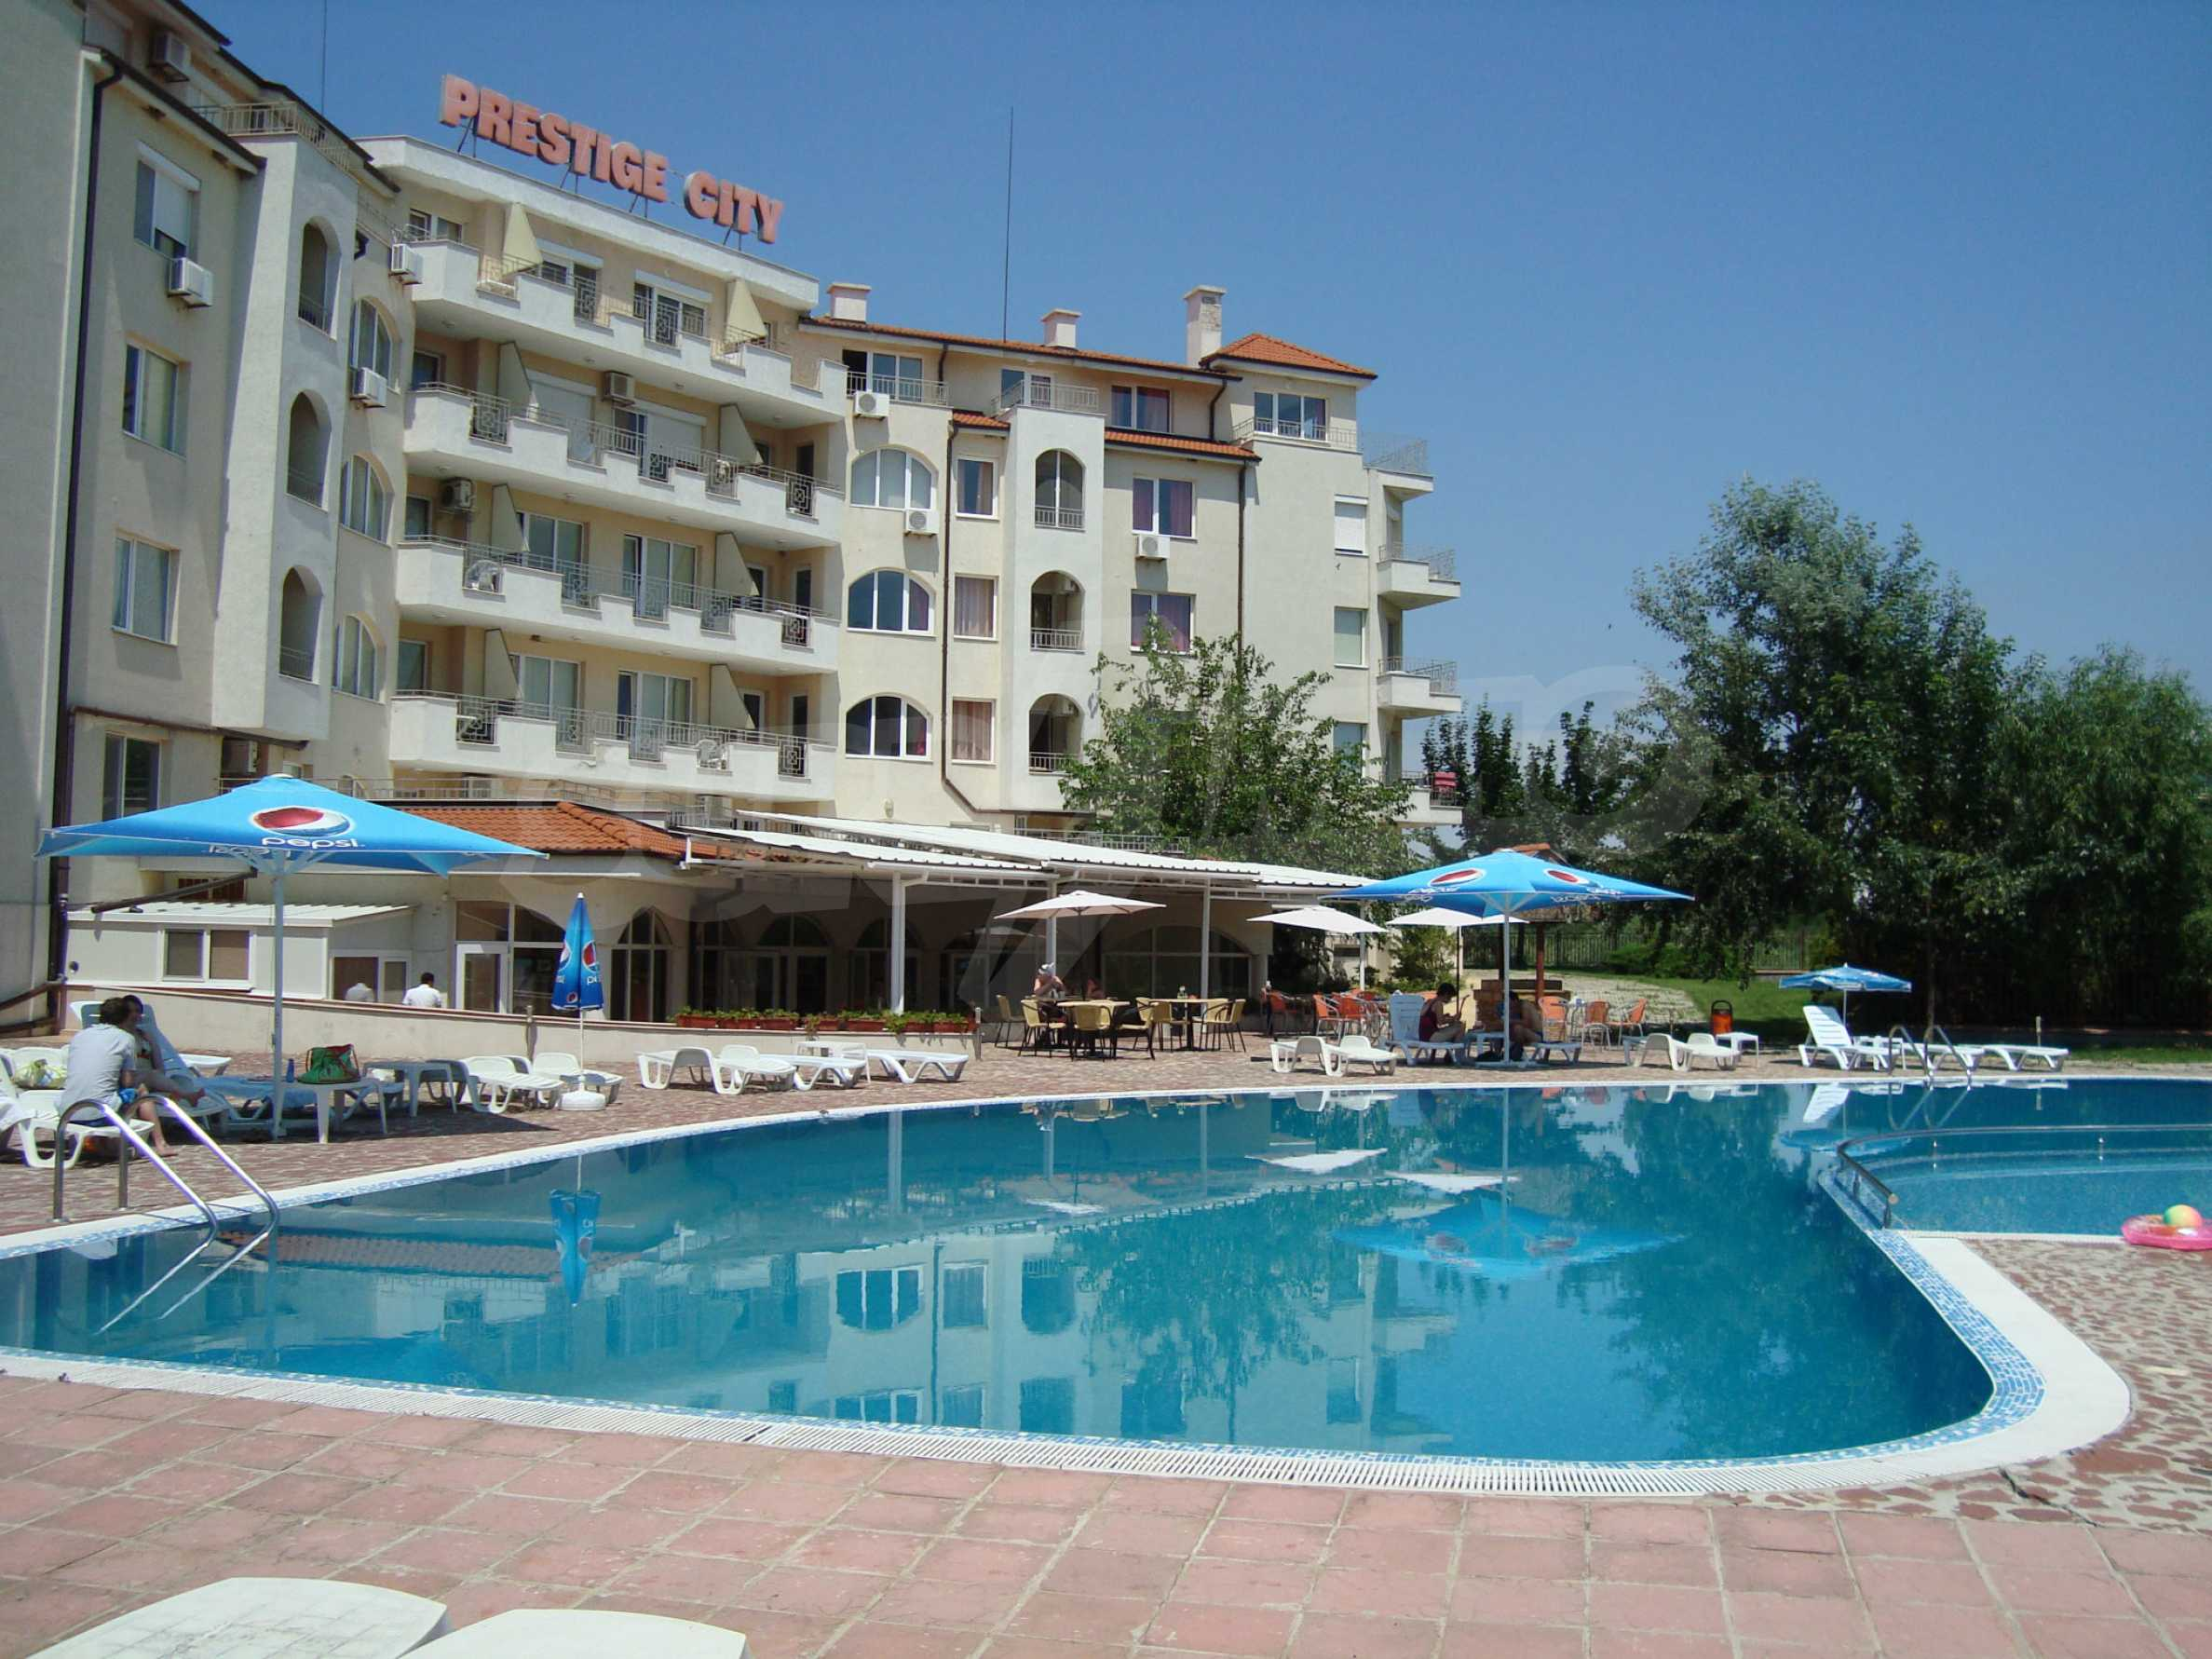 One-bedroom apartment in Prestige City 1 complex in Sunny beach 29